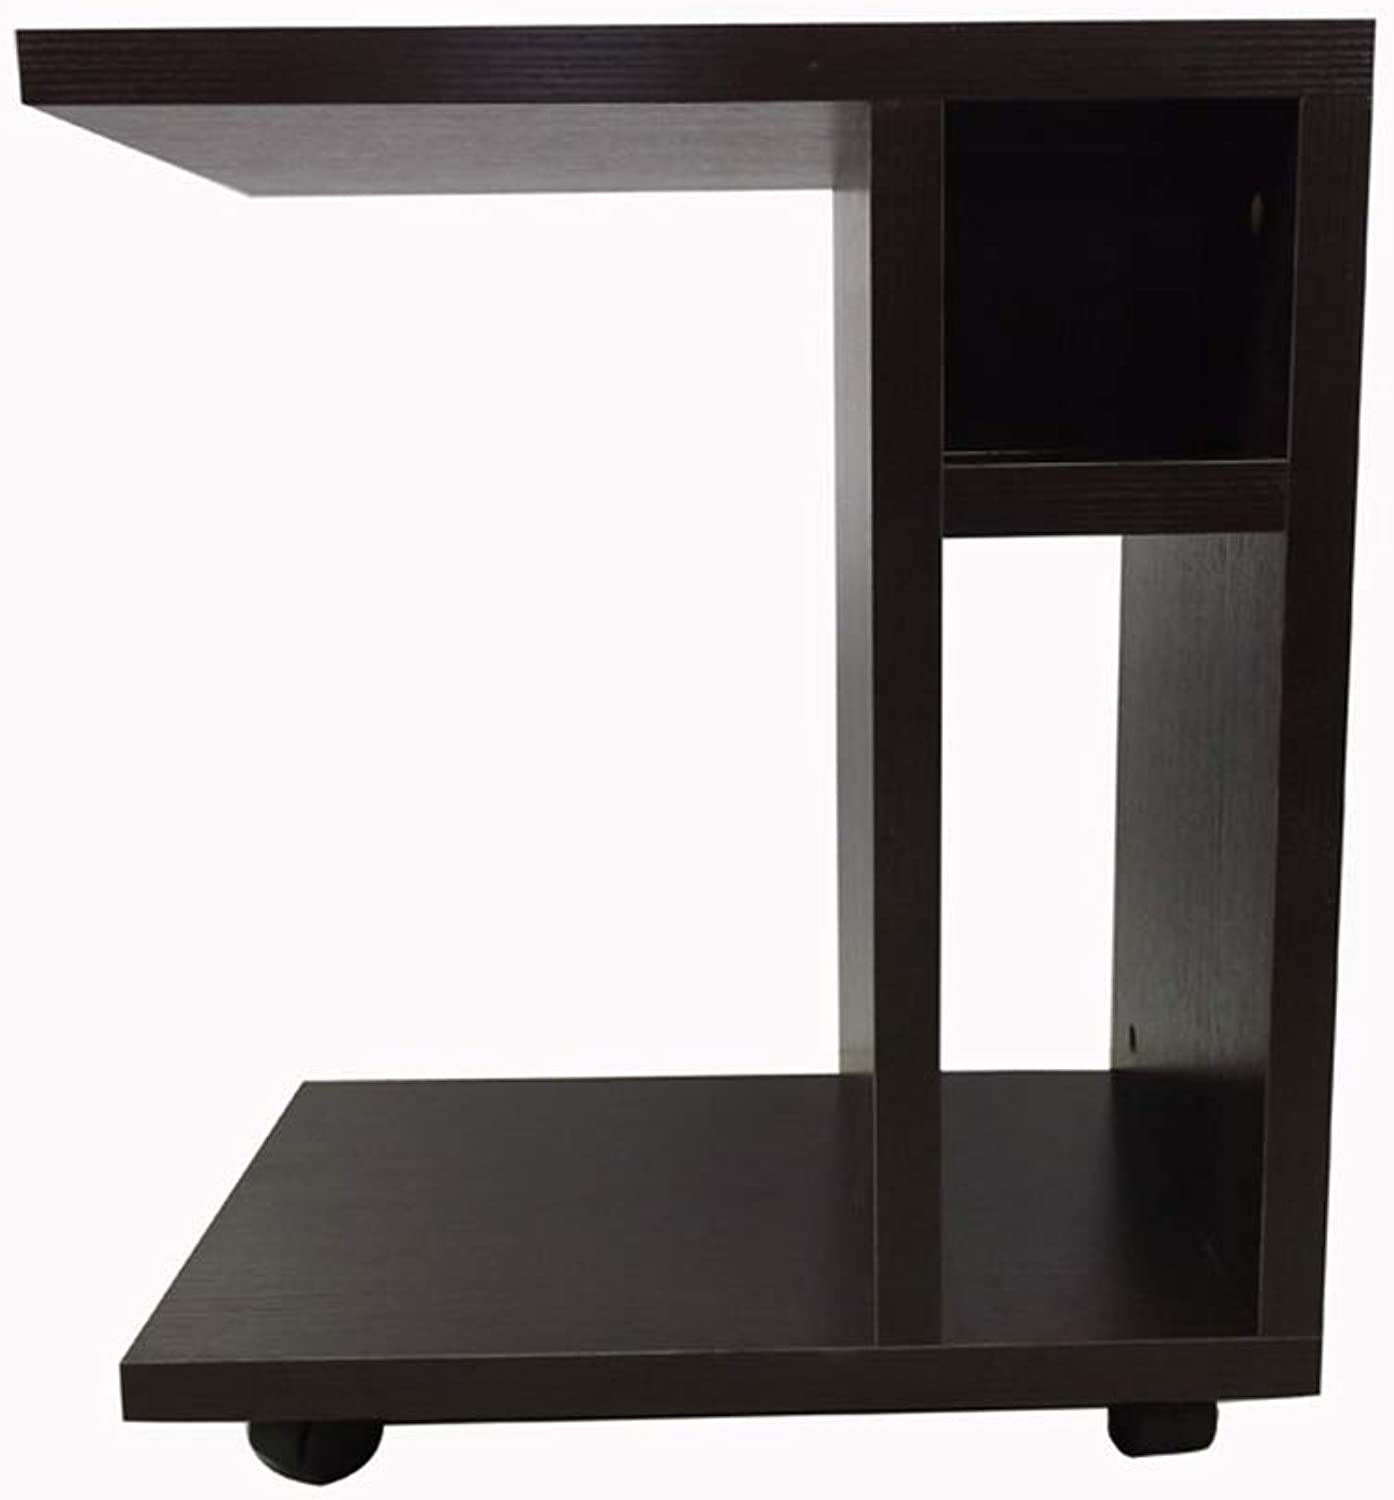 Small Coffee Table Simple Side Table Double Wood-Based Panel Multifunctional Sofa Table